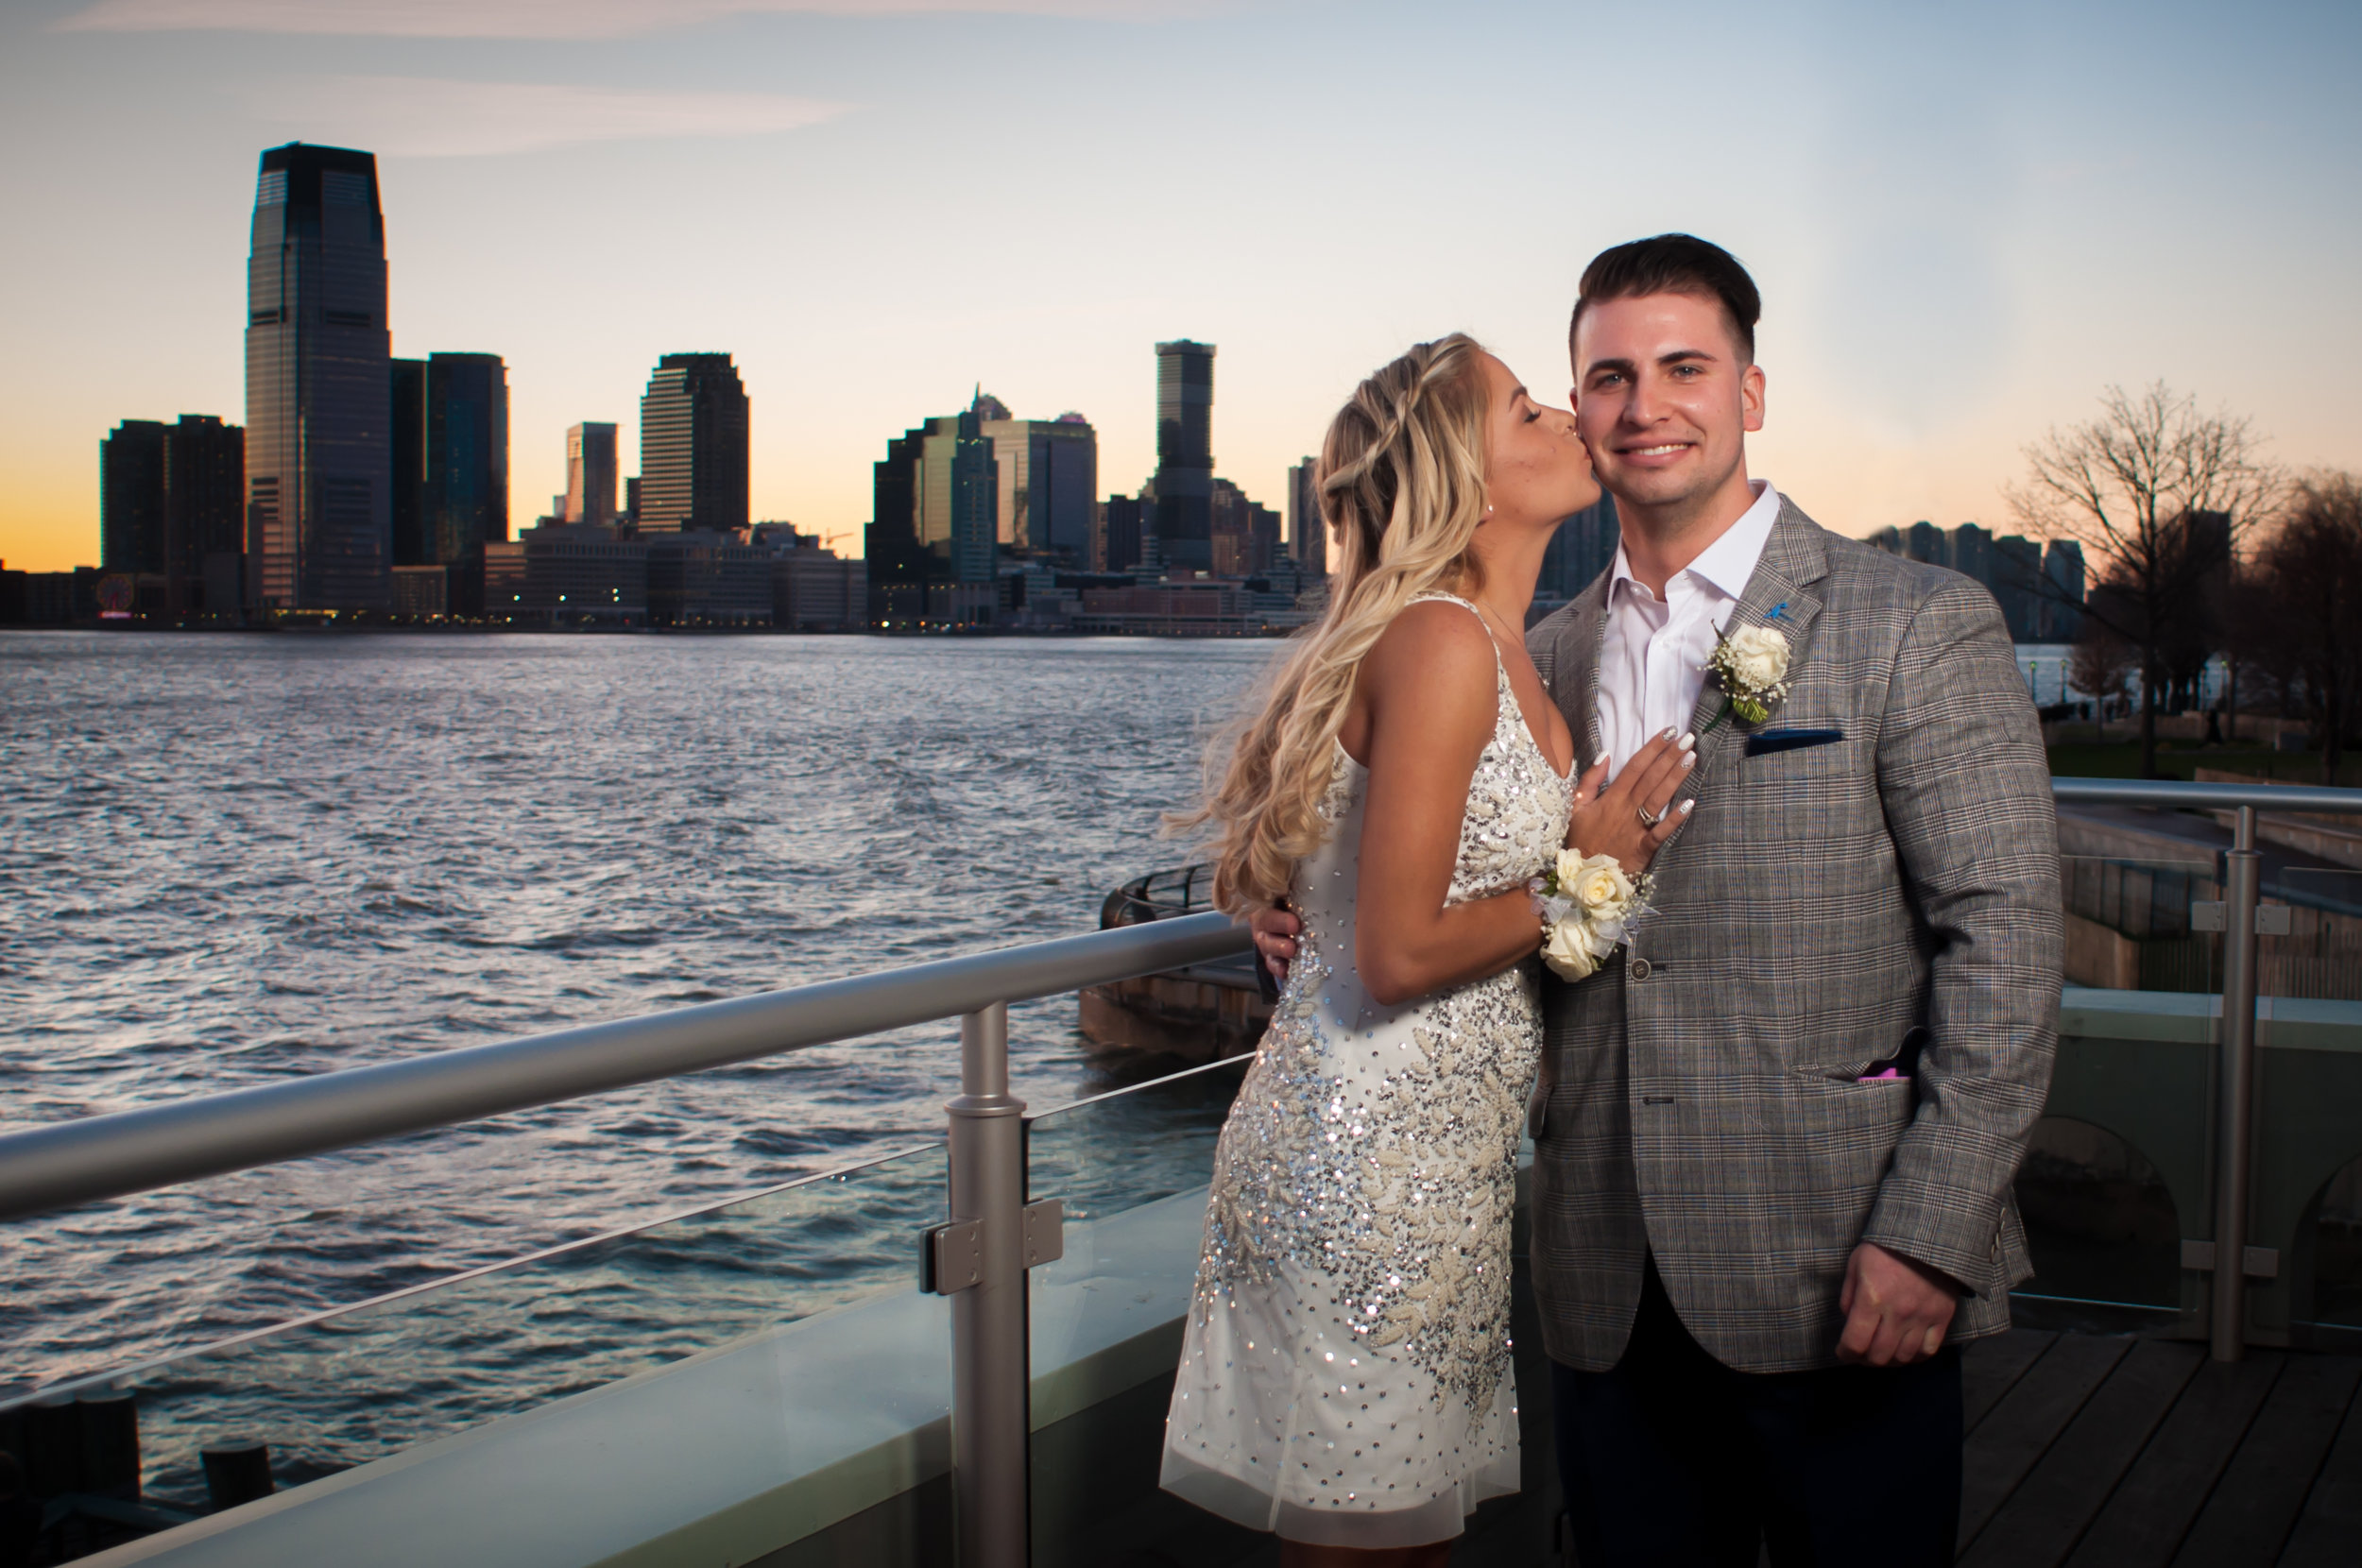 CarrieWestonStudios_Northport_Engagement_Wedding_Portraits_NY_Photography_Photographer-.jpg